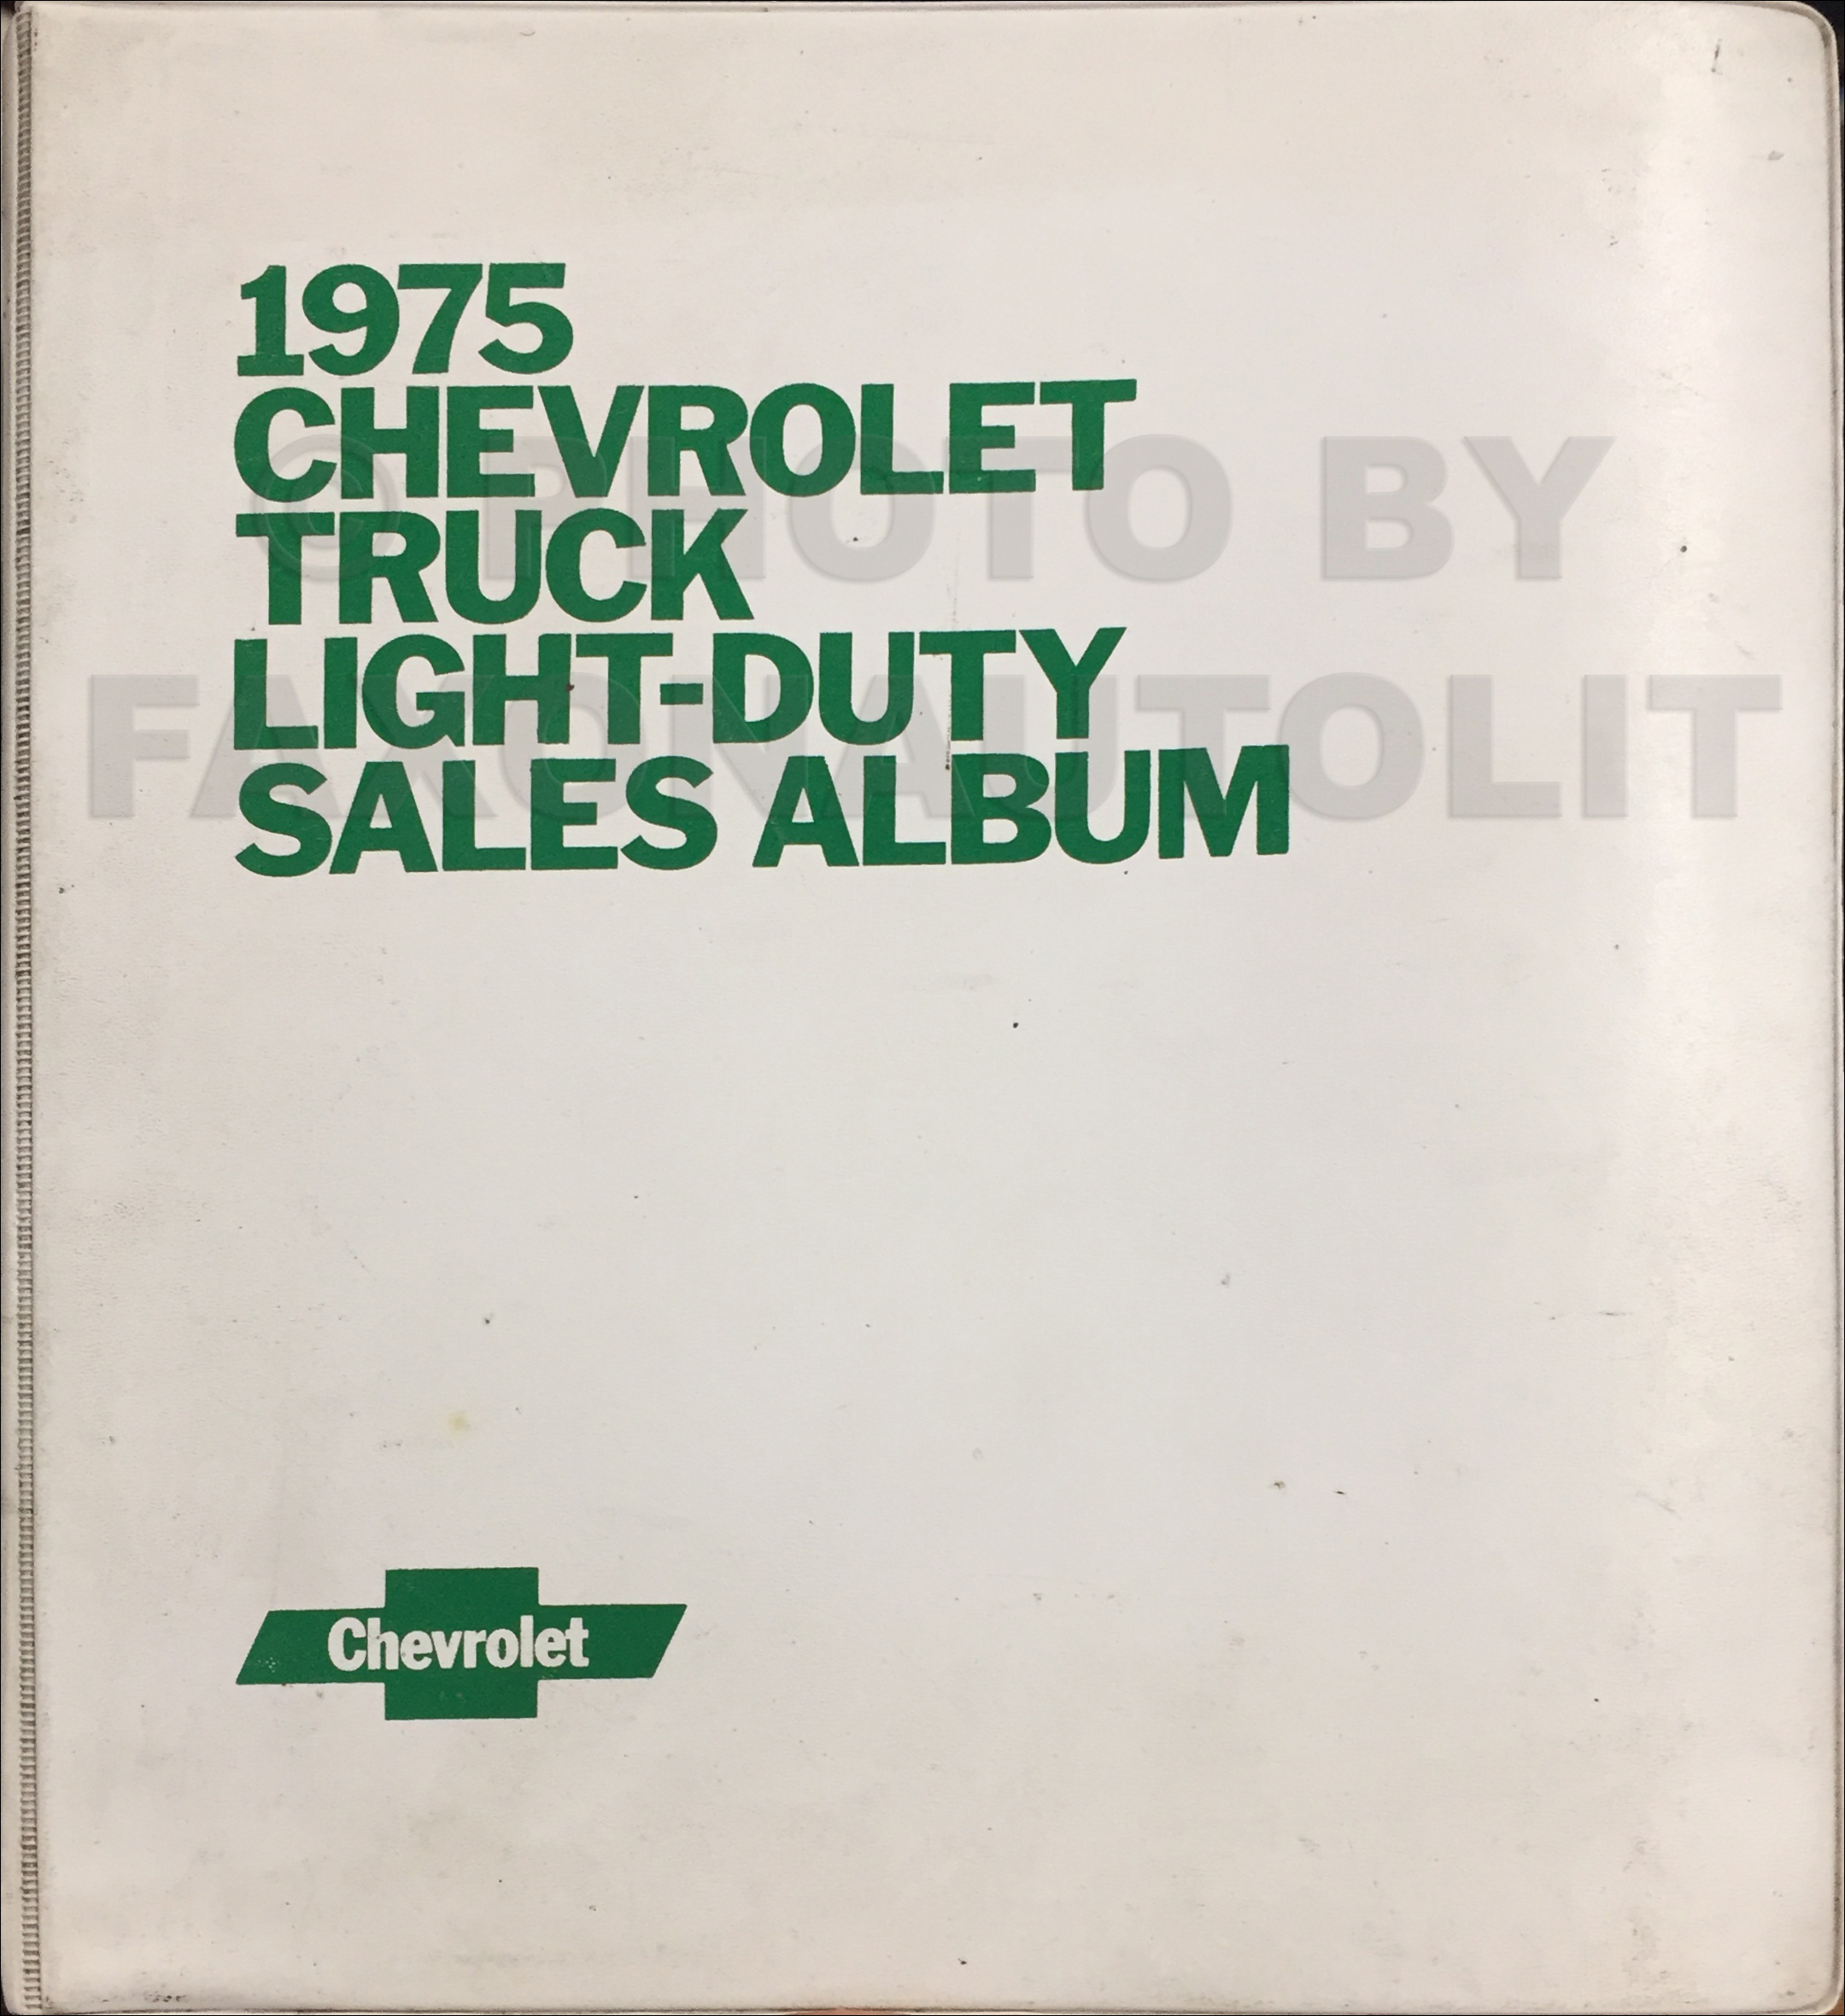 1975 Chevrolet Light Truck Data Book and Color and Upholstery Dealer Album Original